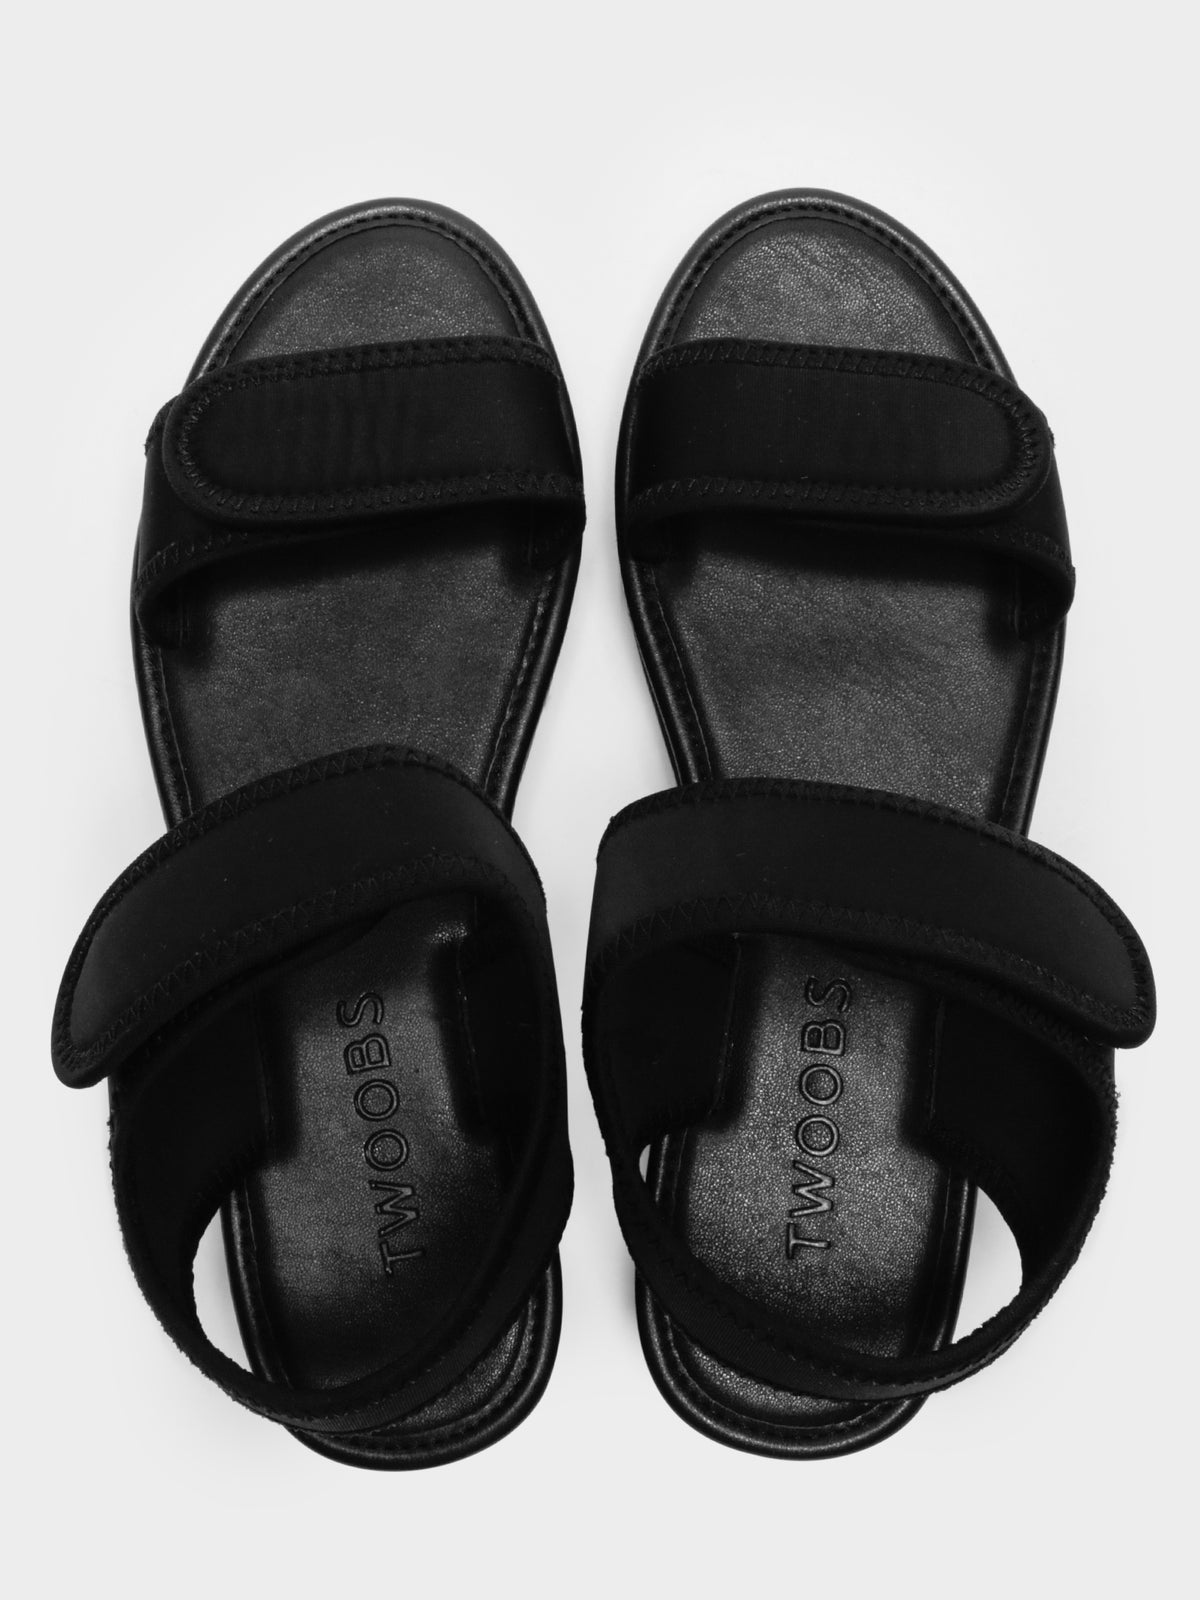 Womens Jett Jaya Neoprene Sandals in Black